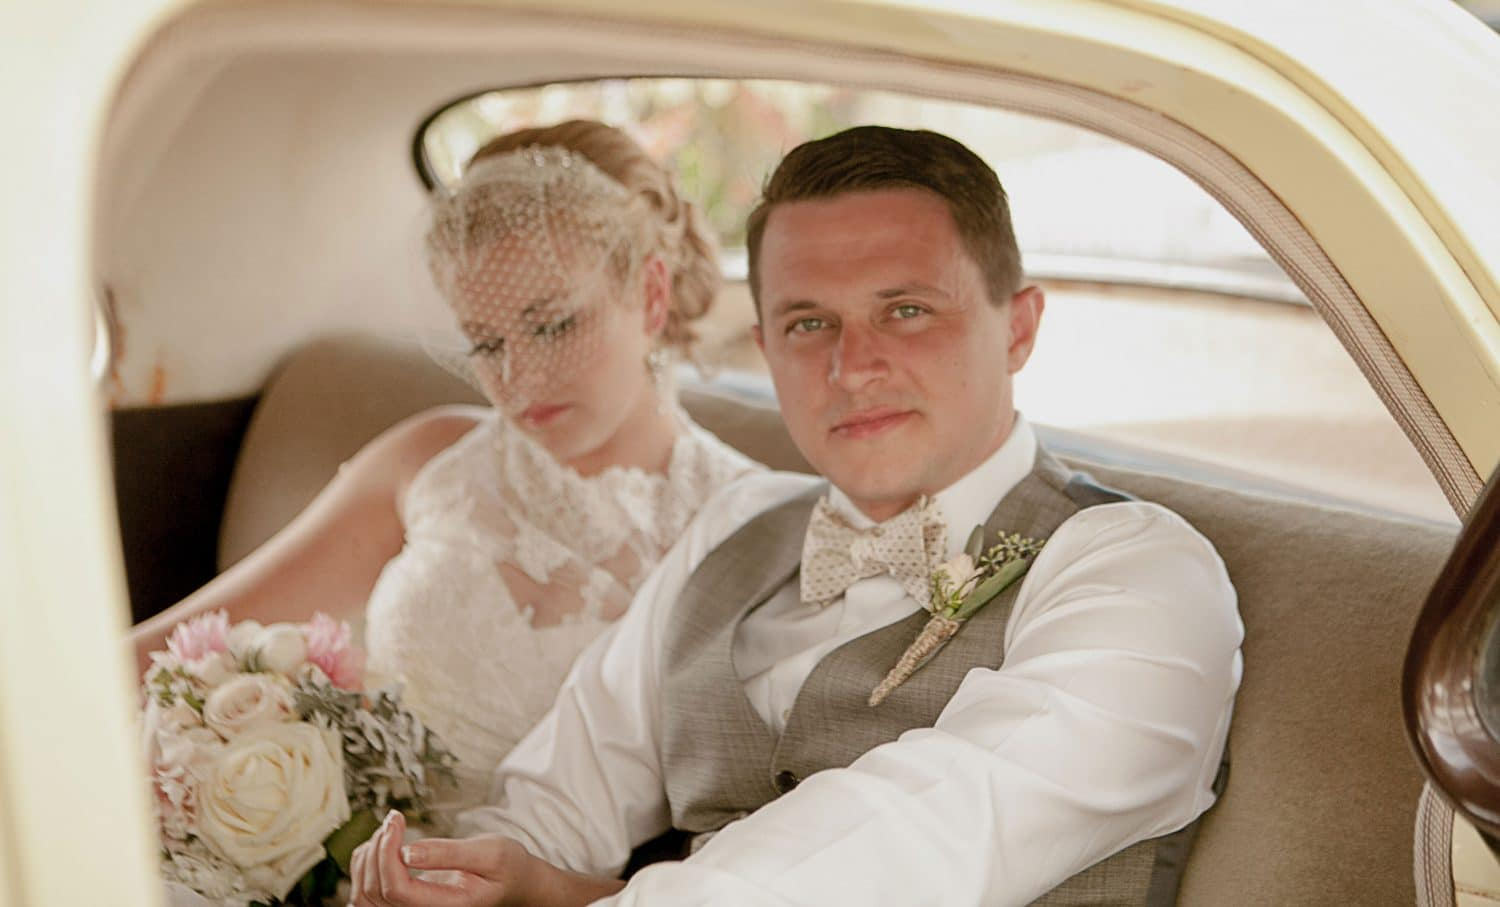 roche-harbor-wedding-couple-groom-vintage-car-birdcage-veil